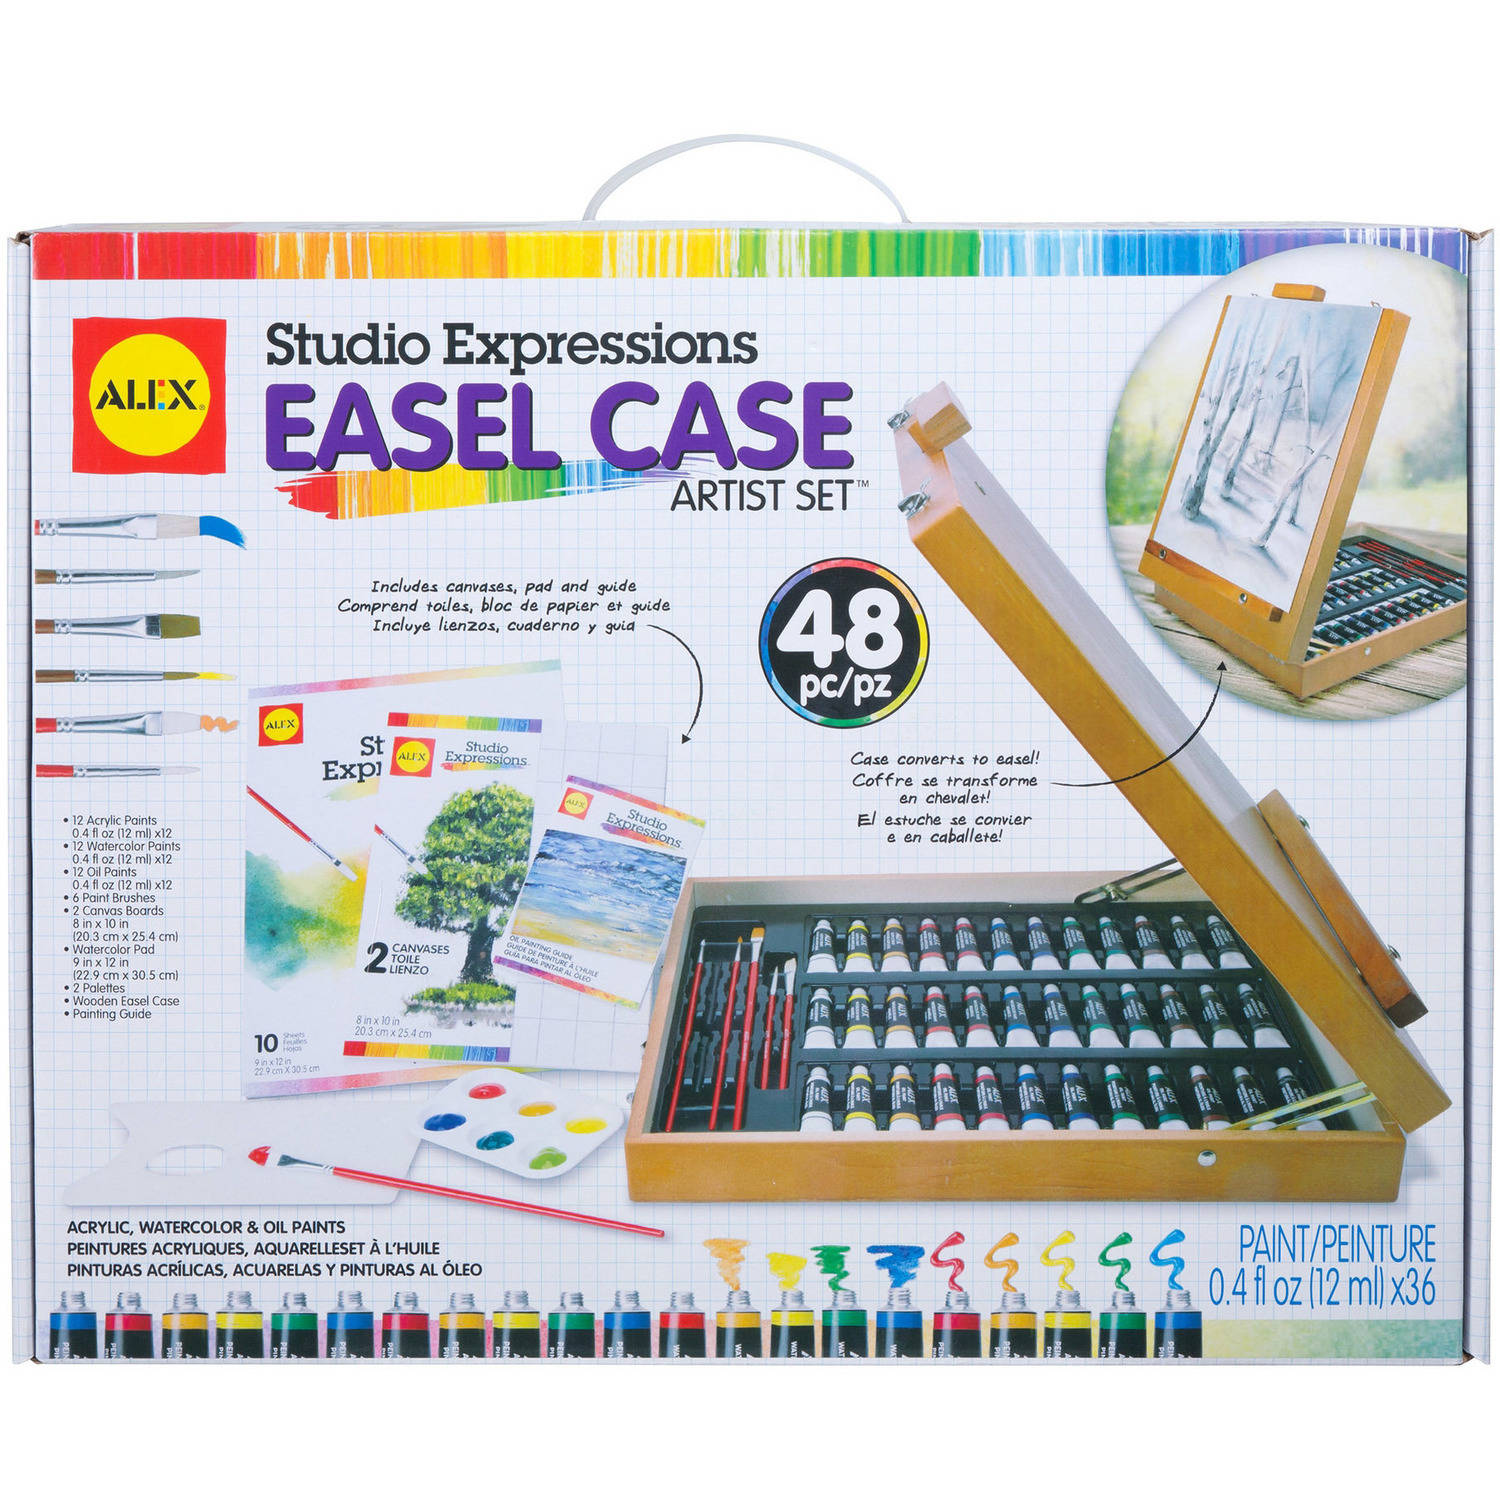 ALEX Art Studio Expressions Easel Case Artist Set by Alex Brands